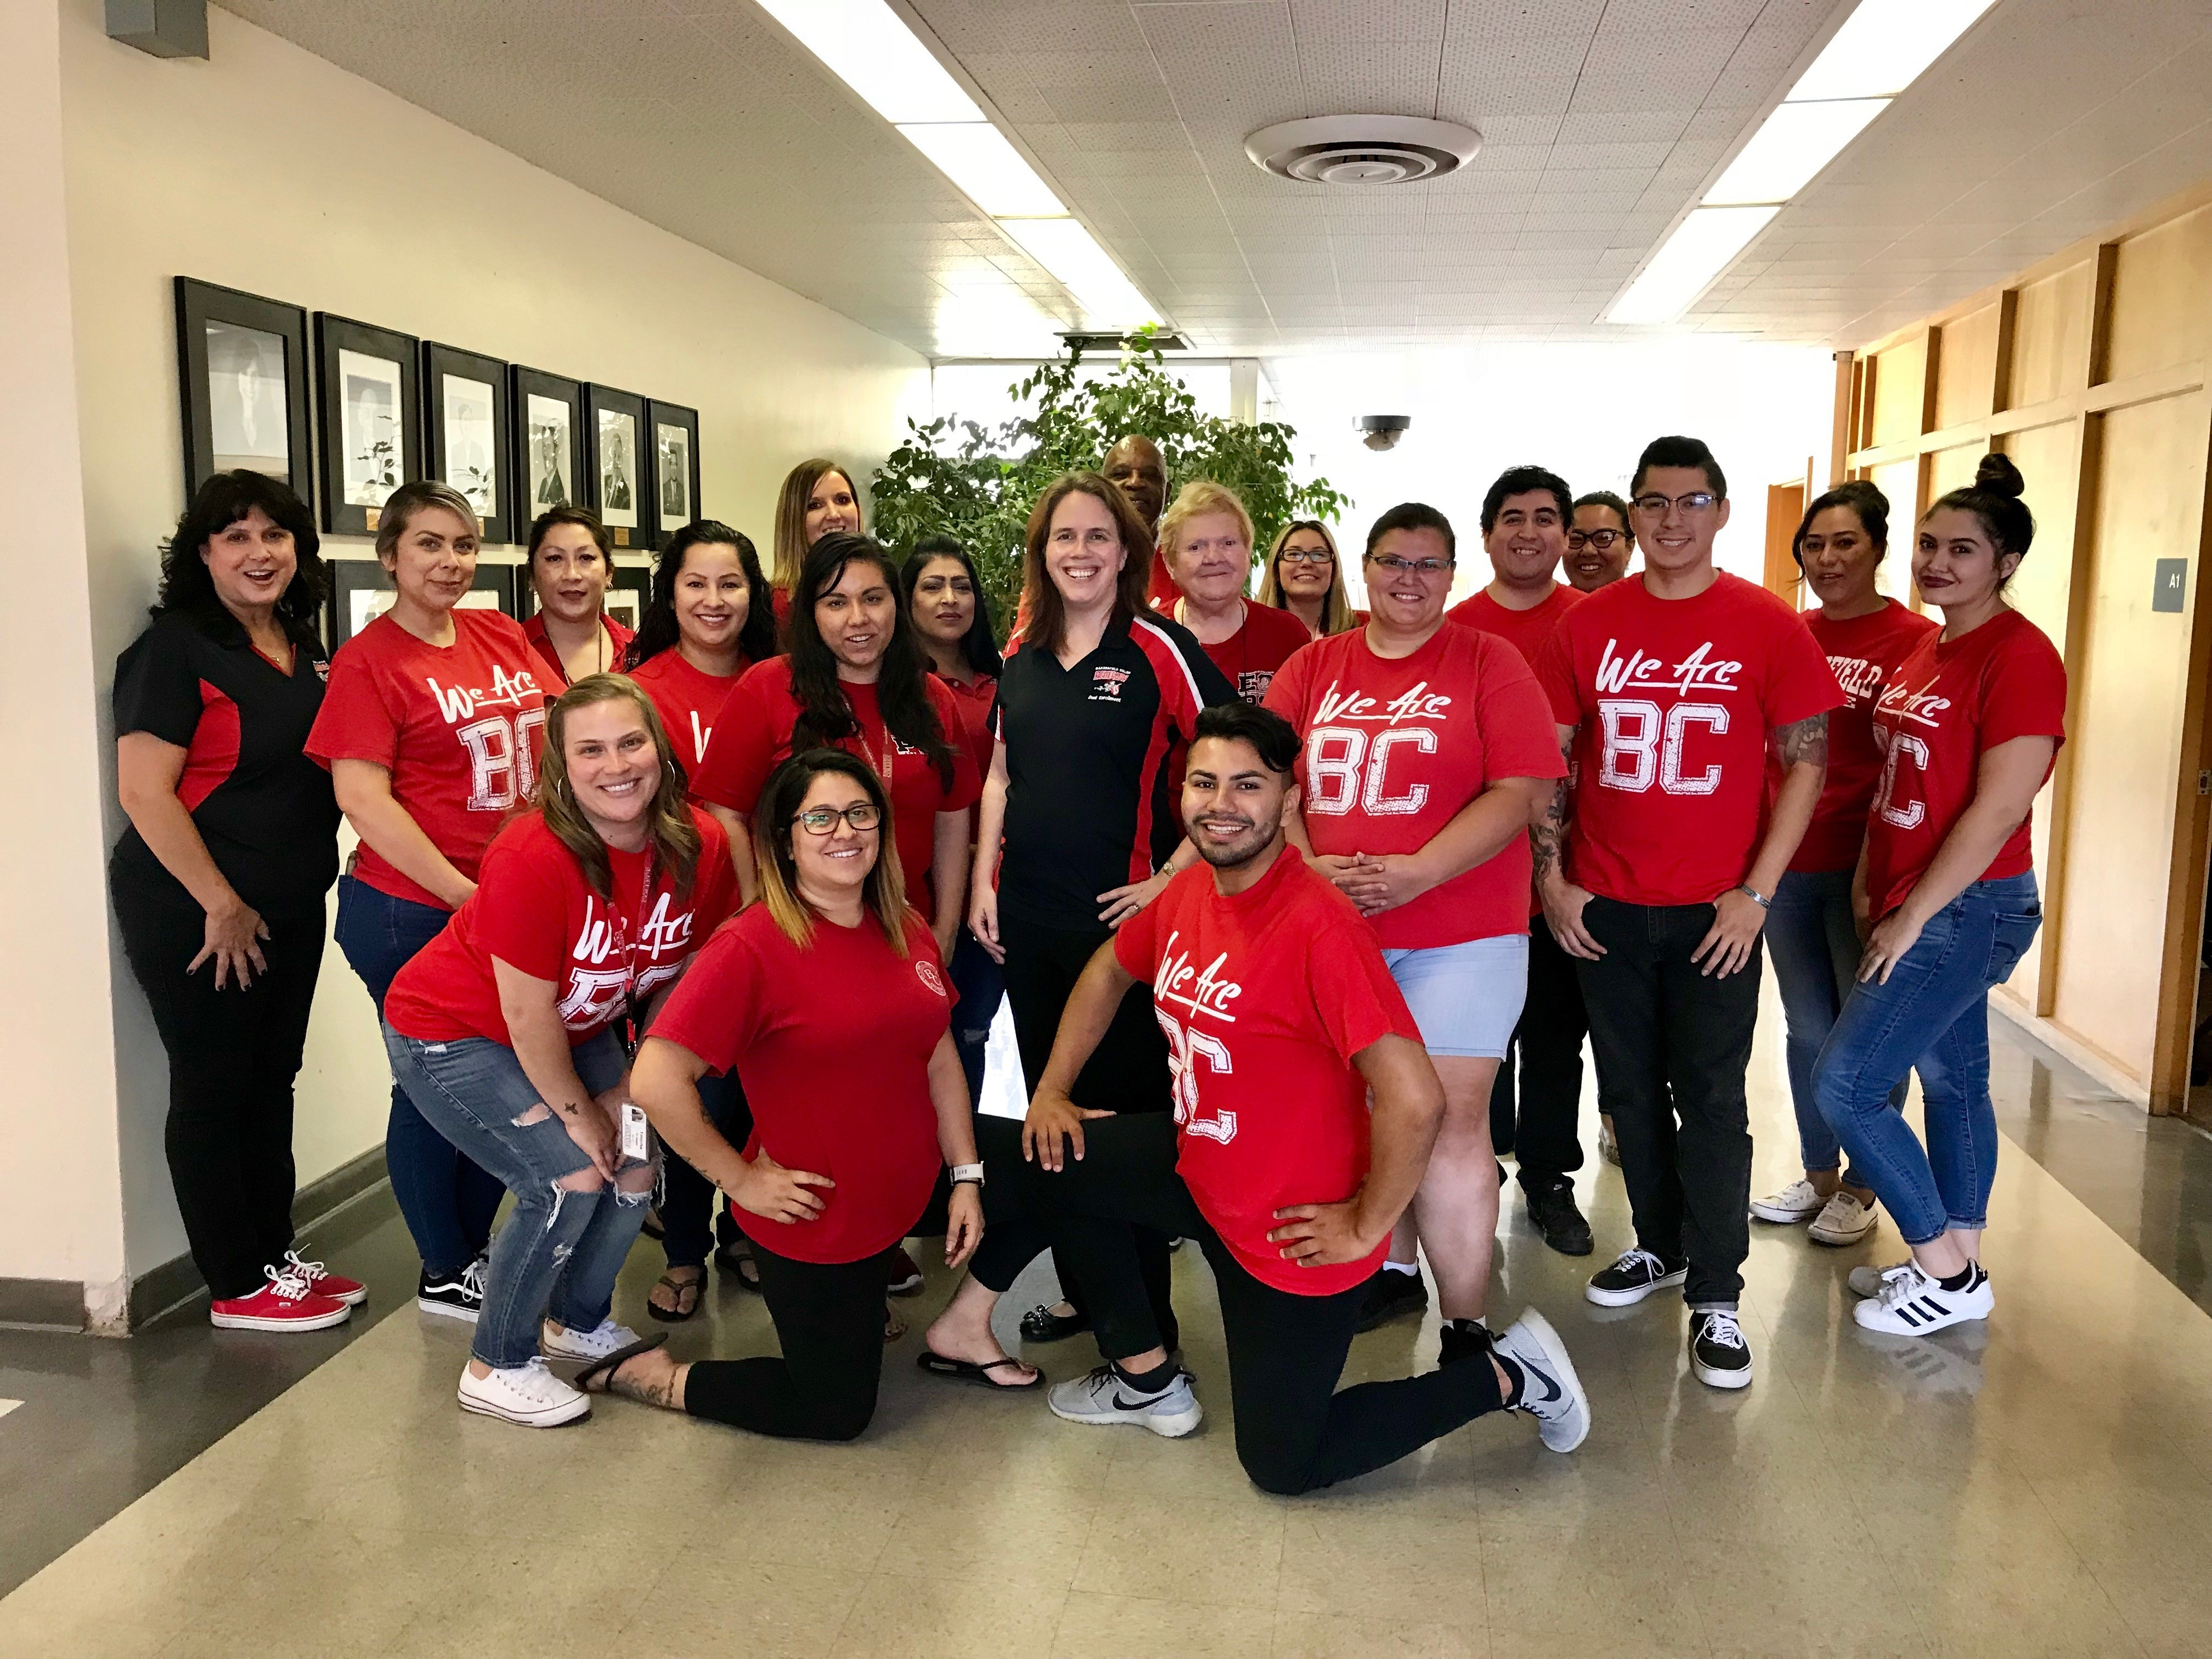 The Administration Building staff proudly showed off their BC red today